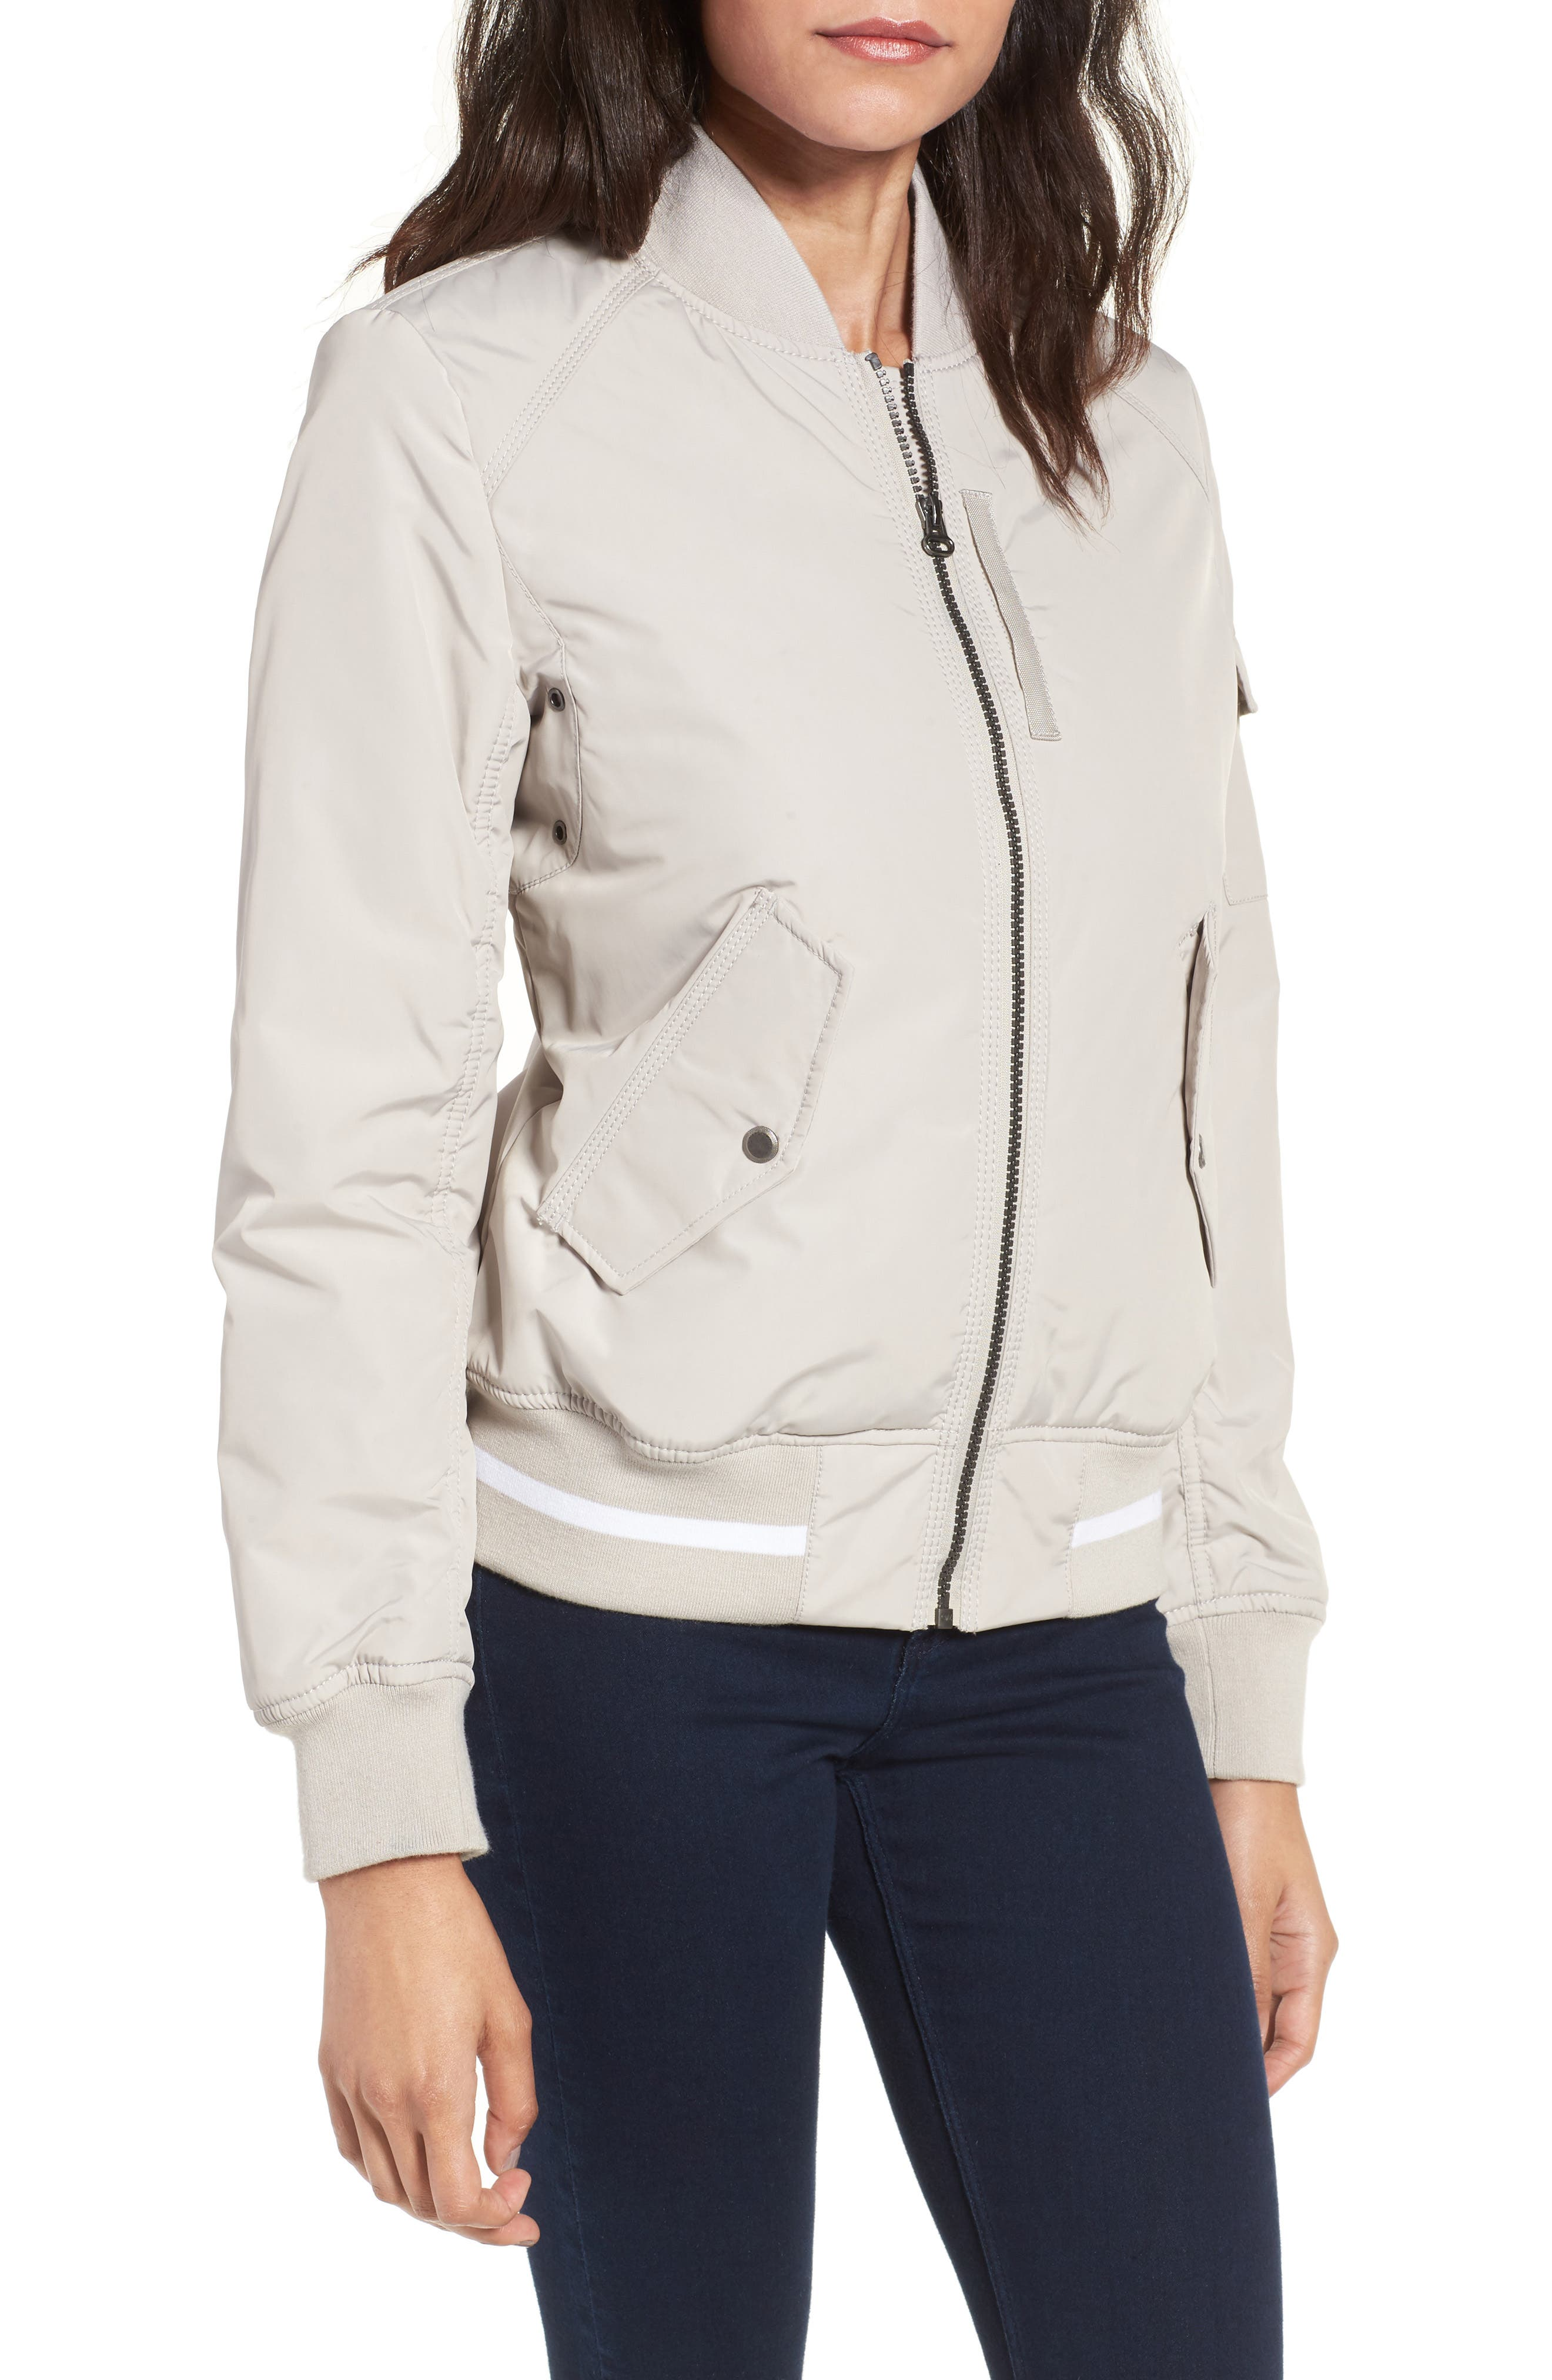 Foster Nylon Twill Bomber Jacket,                             Main thumbnail 3, color,